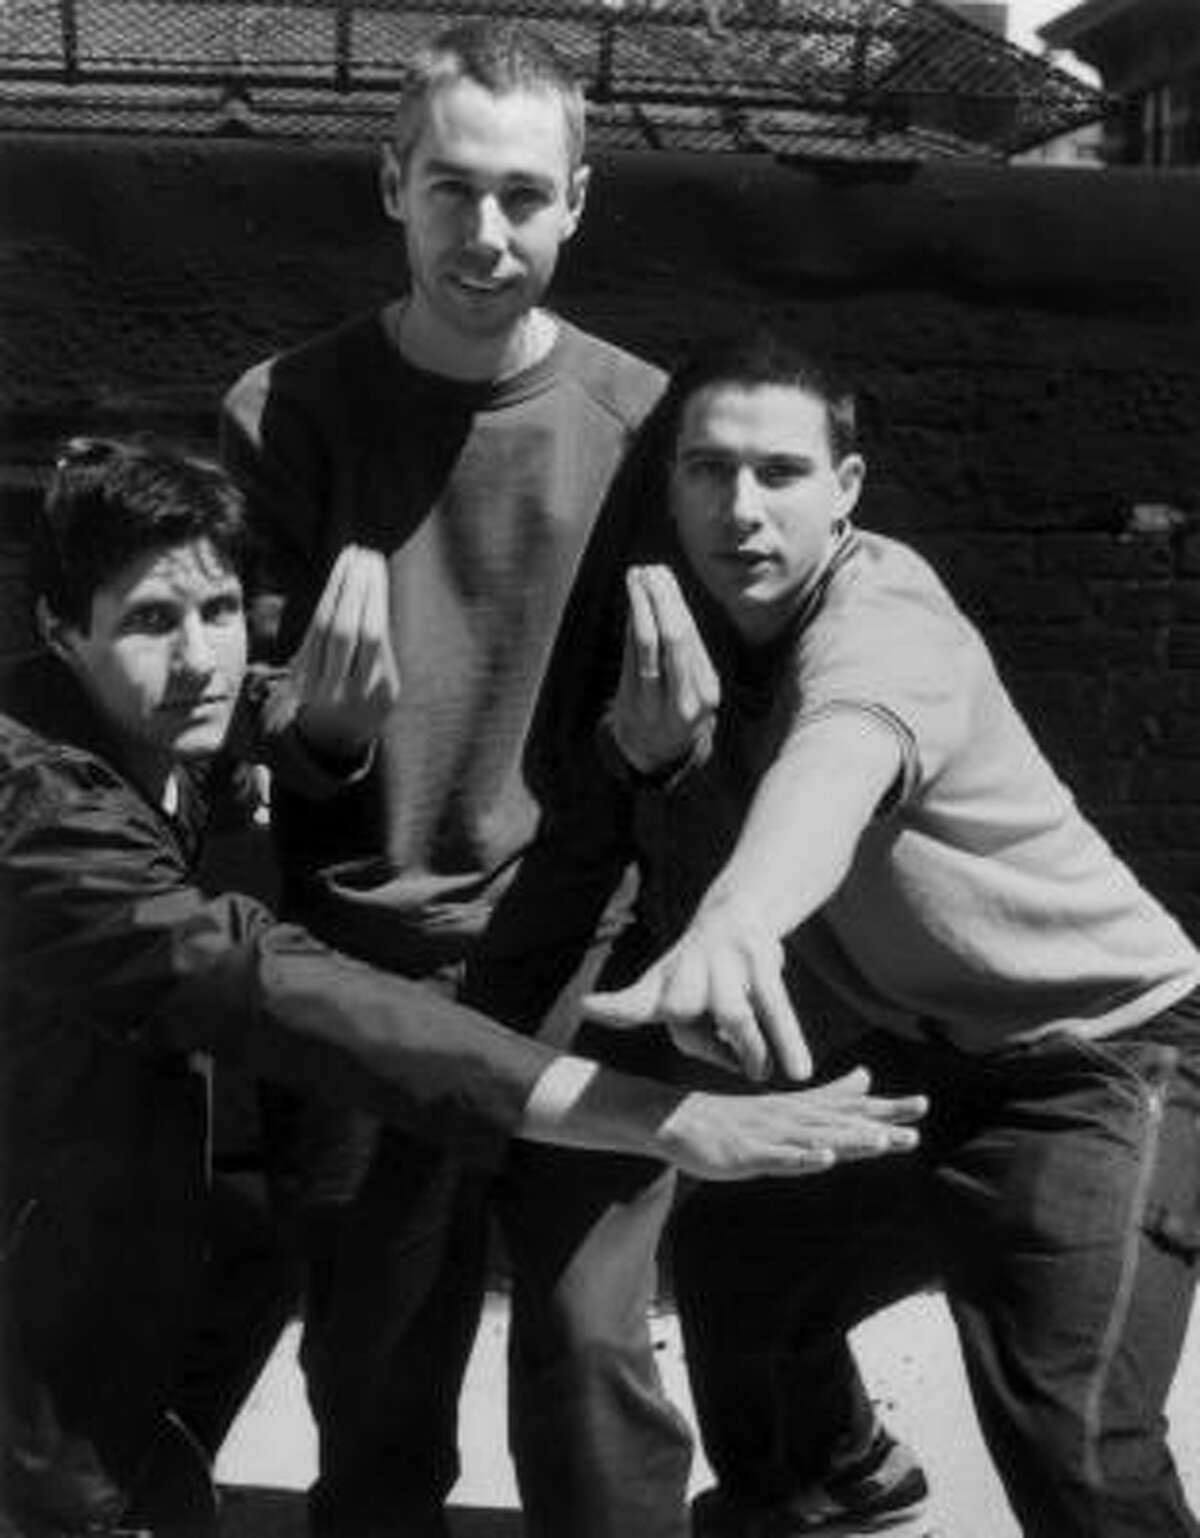 2. Beastie Boys Then: Snot-nosed party rappers singing about shindigs, cheap booze and all things misogynistic.